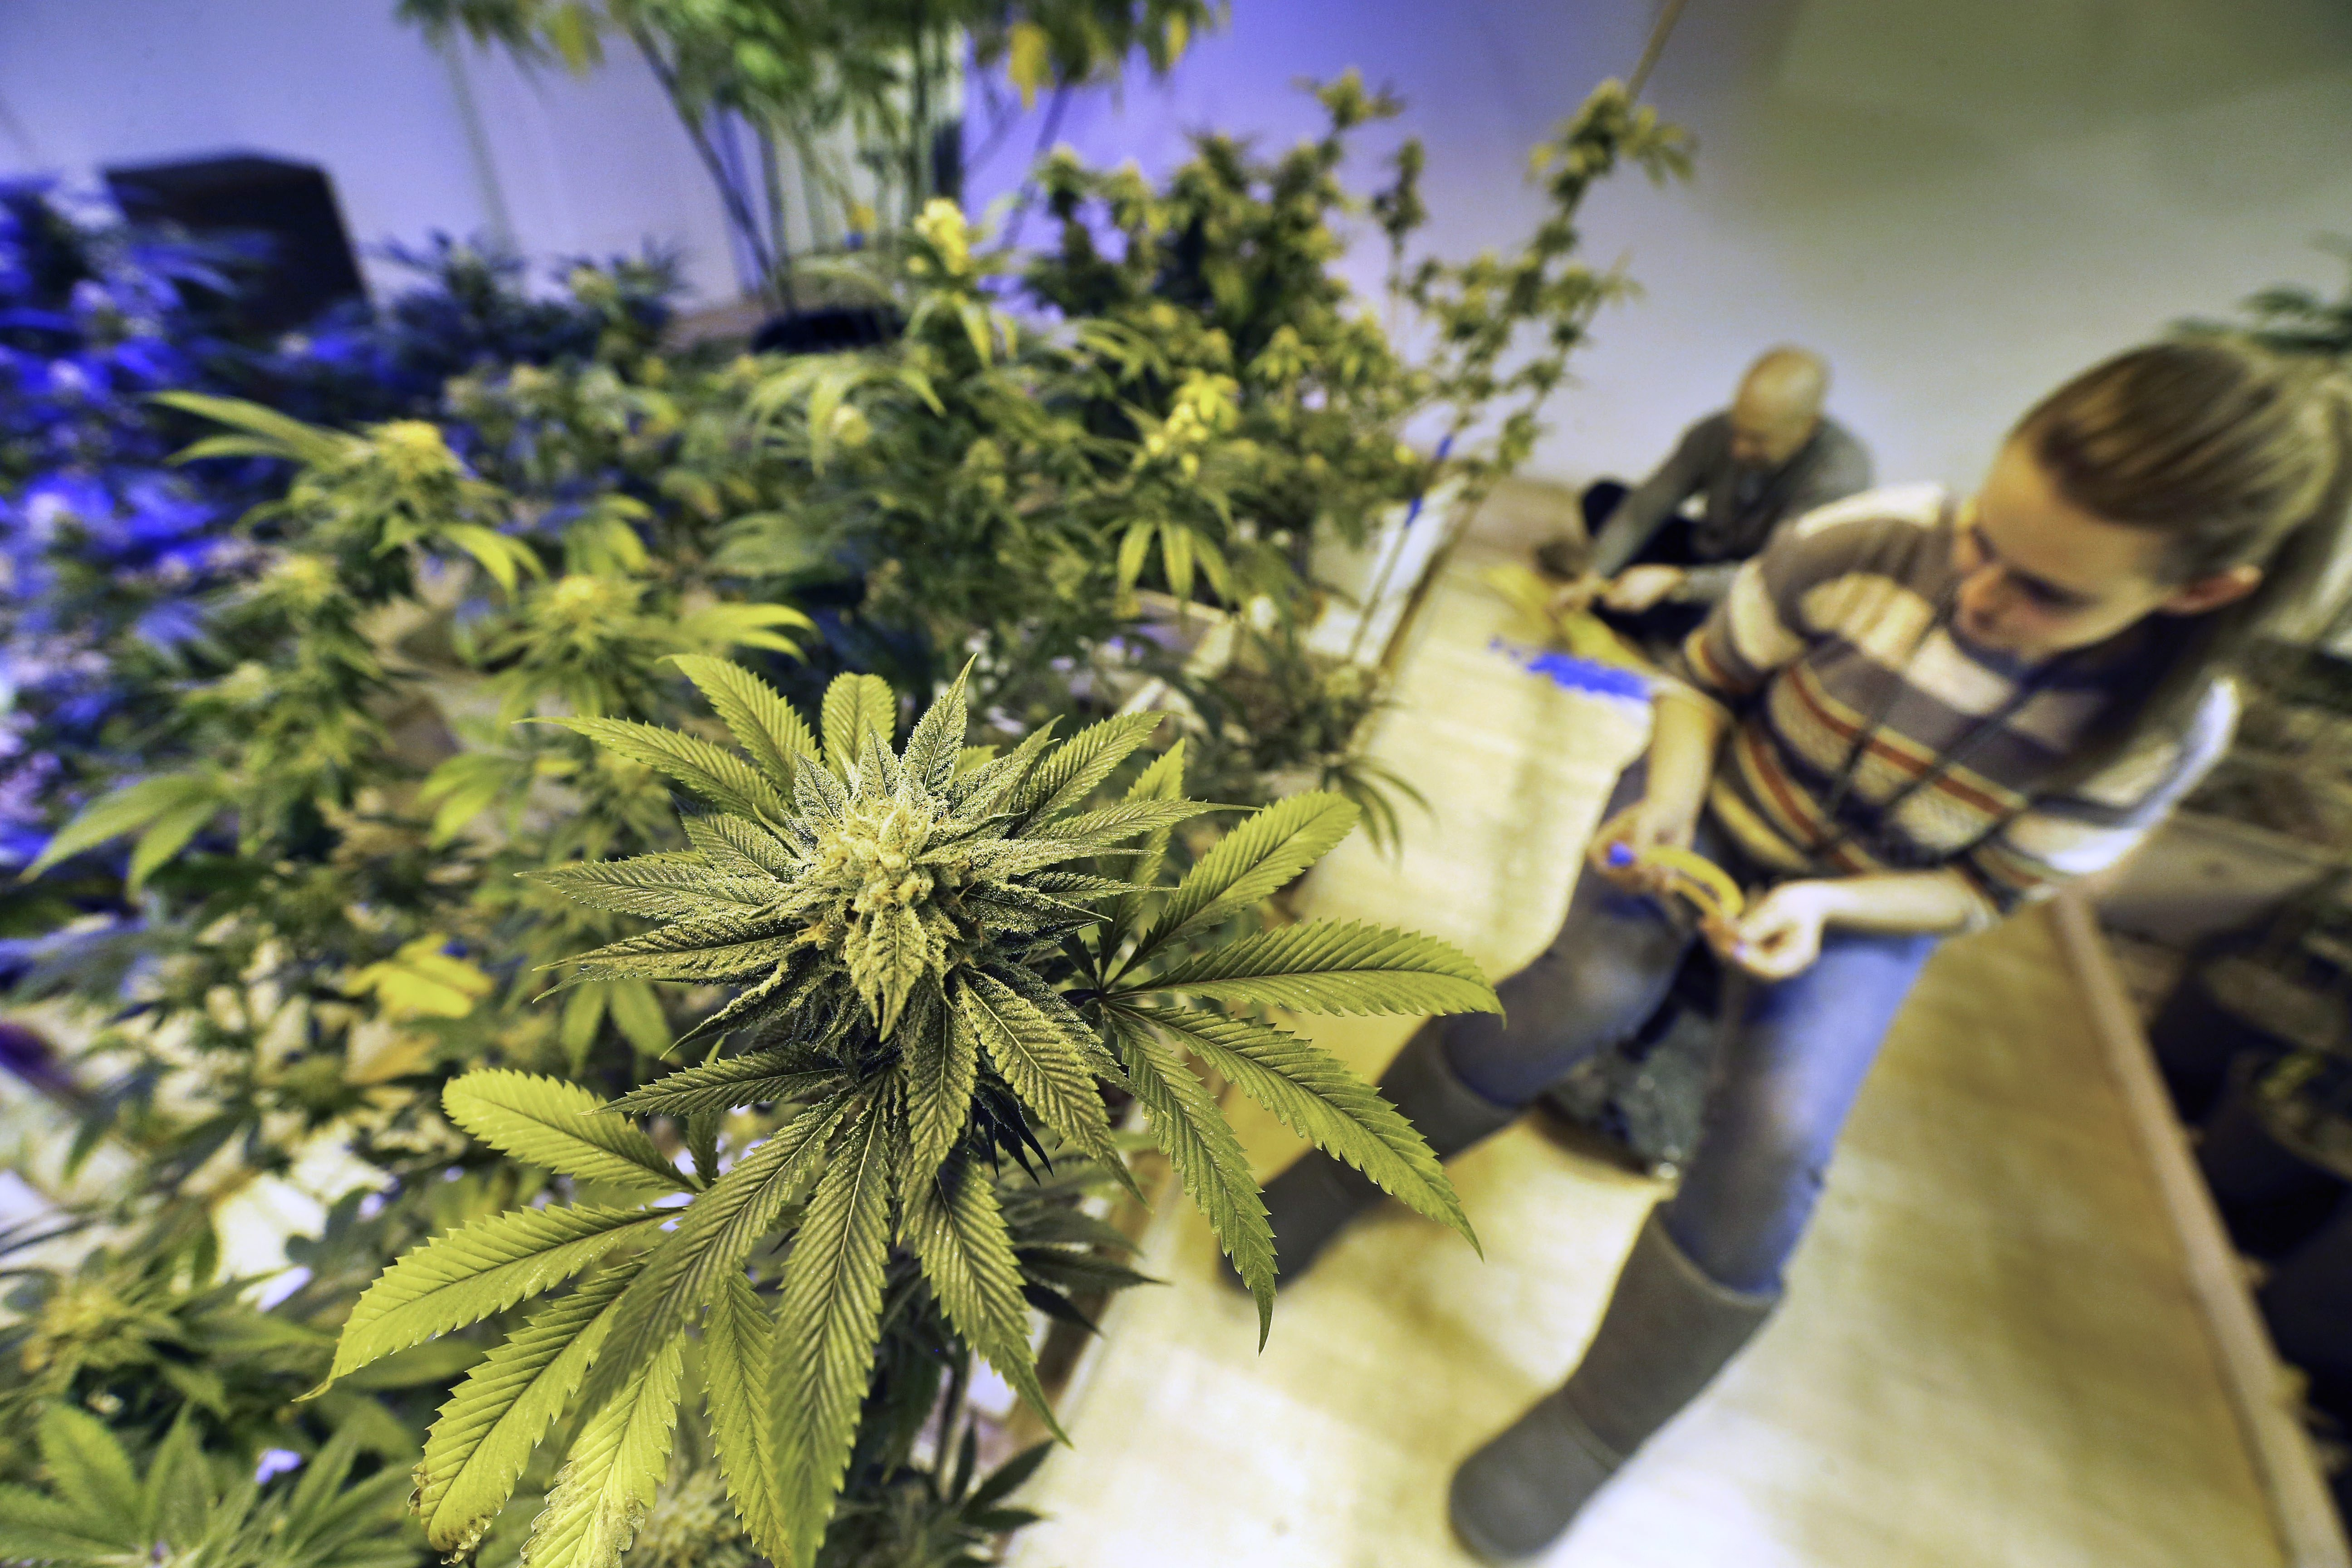 The legalization of recreational pot has resulted in an 85 percent increase in the number of people – such as Cheyenne Fox, shown above at 3D Cannabis Center in Denver – working in Colorado's marijuana industry since the same time last year.